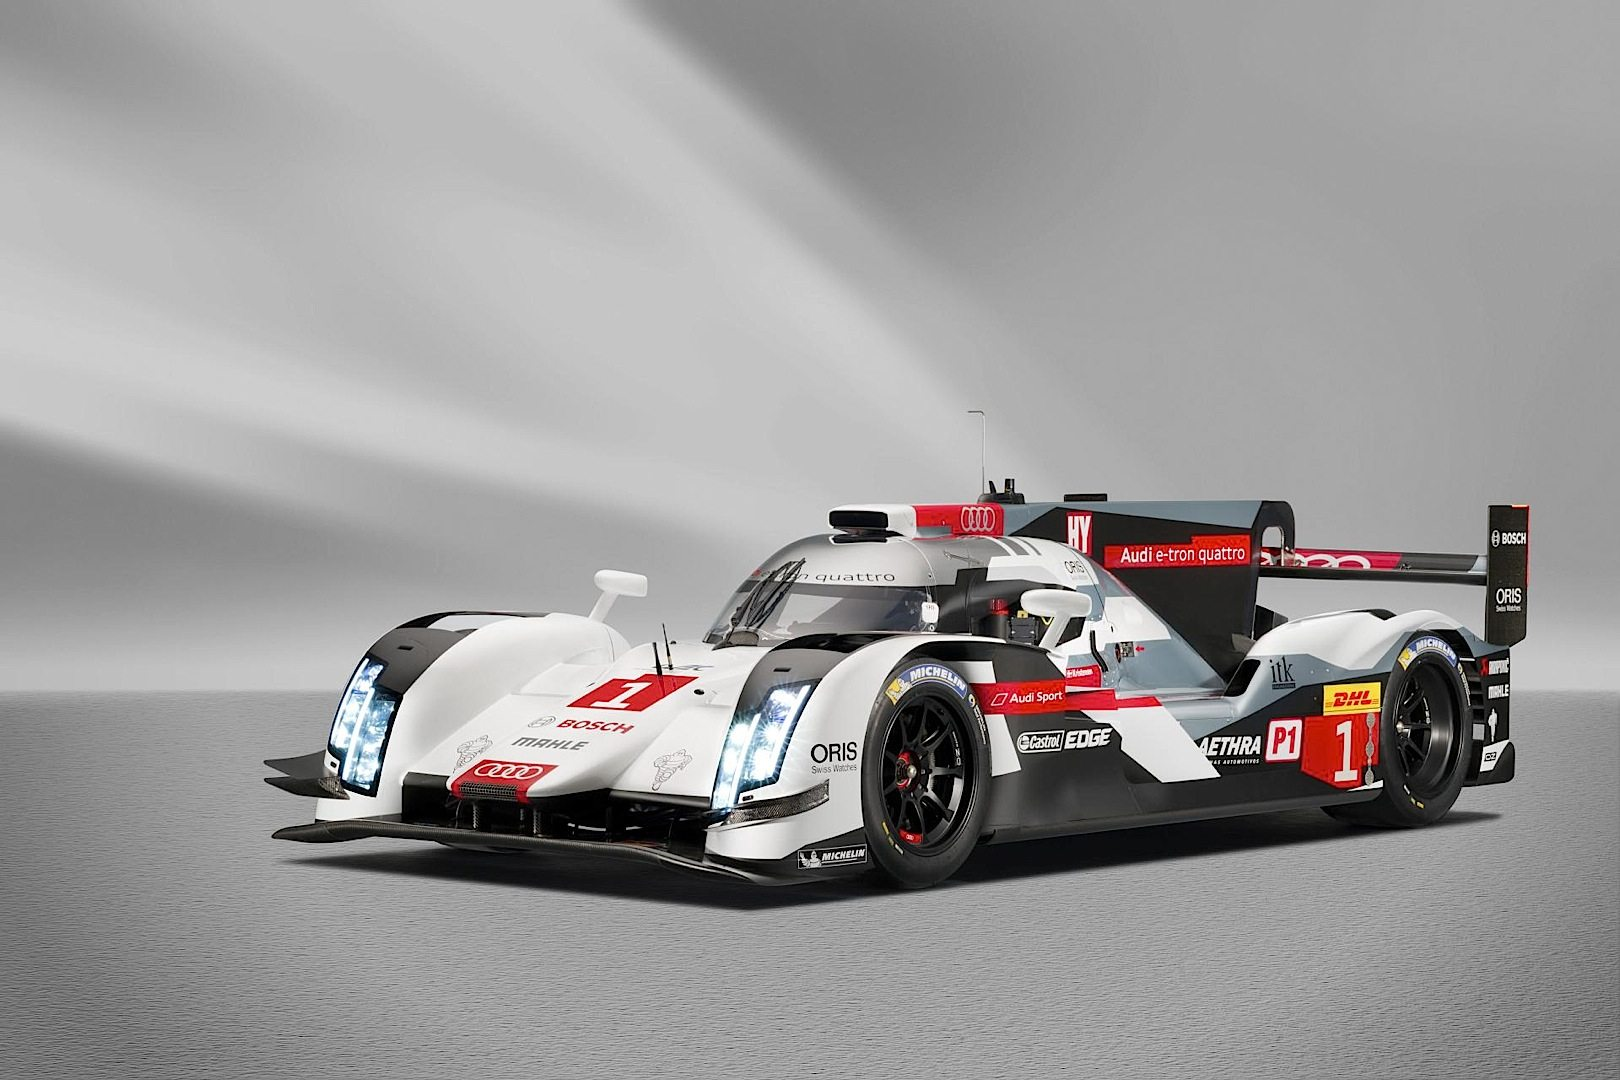 2014-audi-r18-e-tron-quattro-gains-new-livery-engine-update-video_2